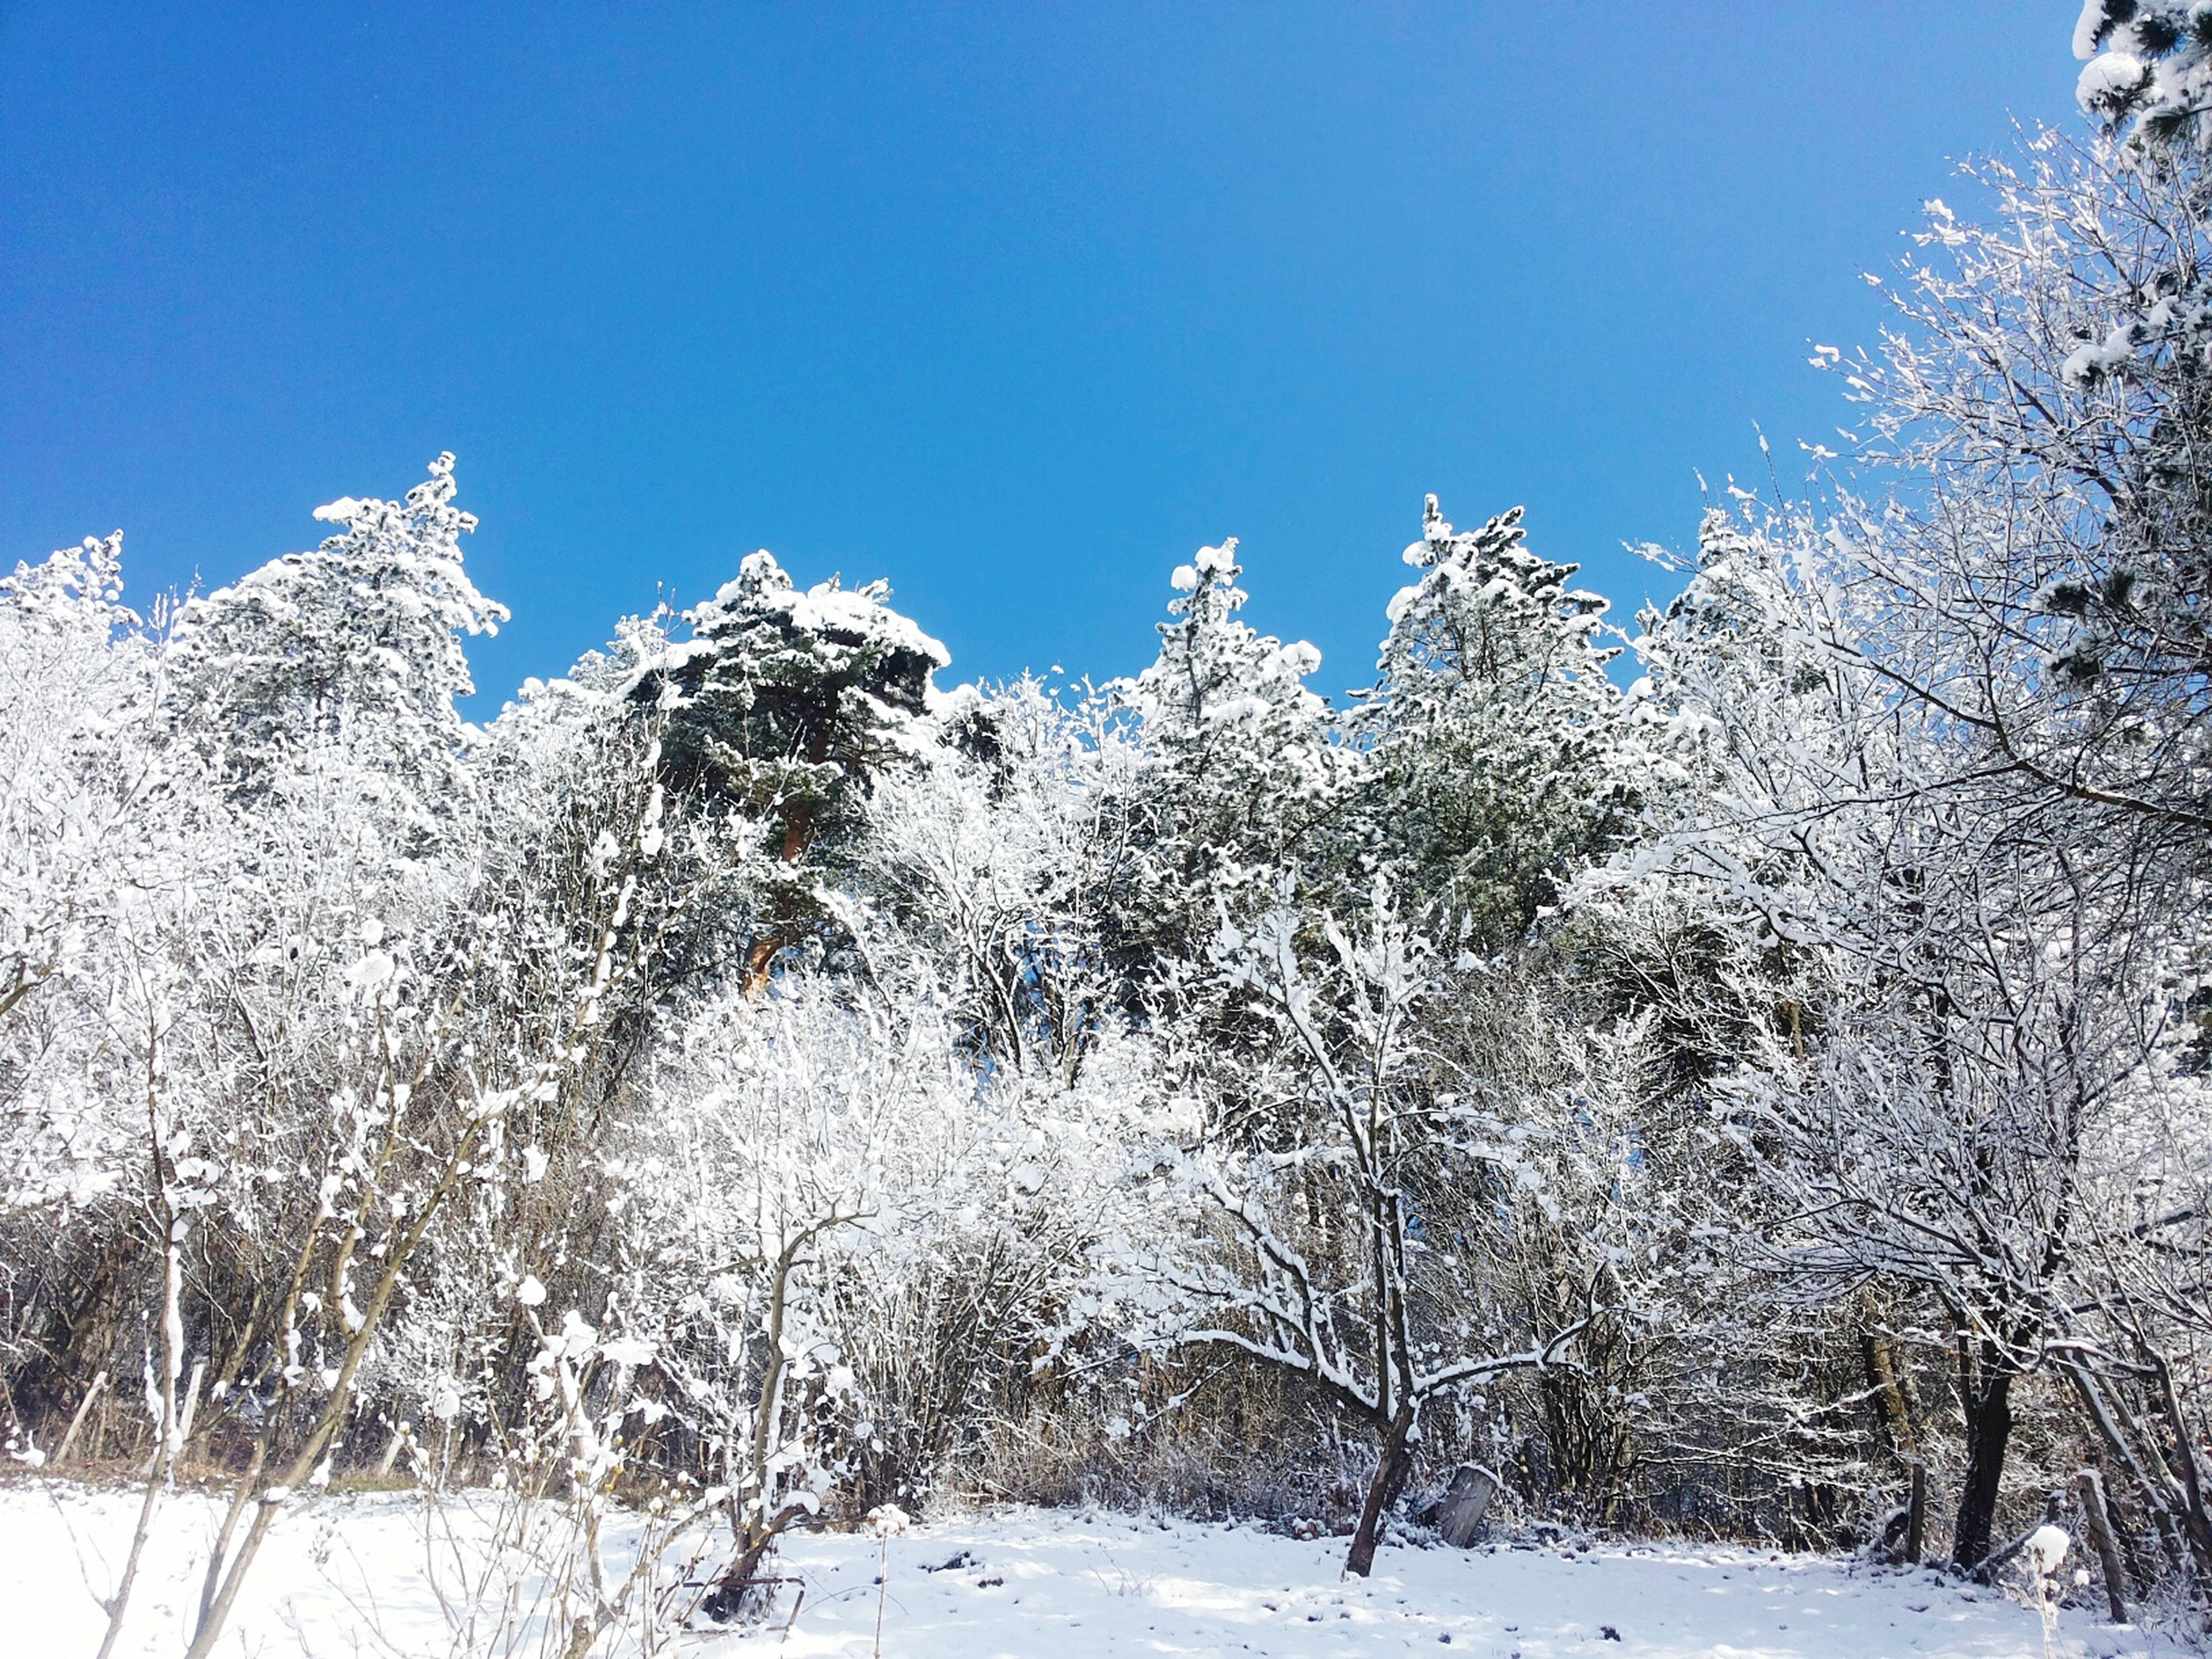 snow, winter, cold temperature, season, clear sky, tree, weather, covering, white color, tranquility, tranquil scene, nature, beauty in nature, blue, landscape, scenics, frozen, copy space, field, covered